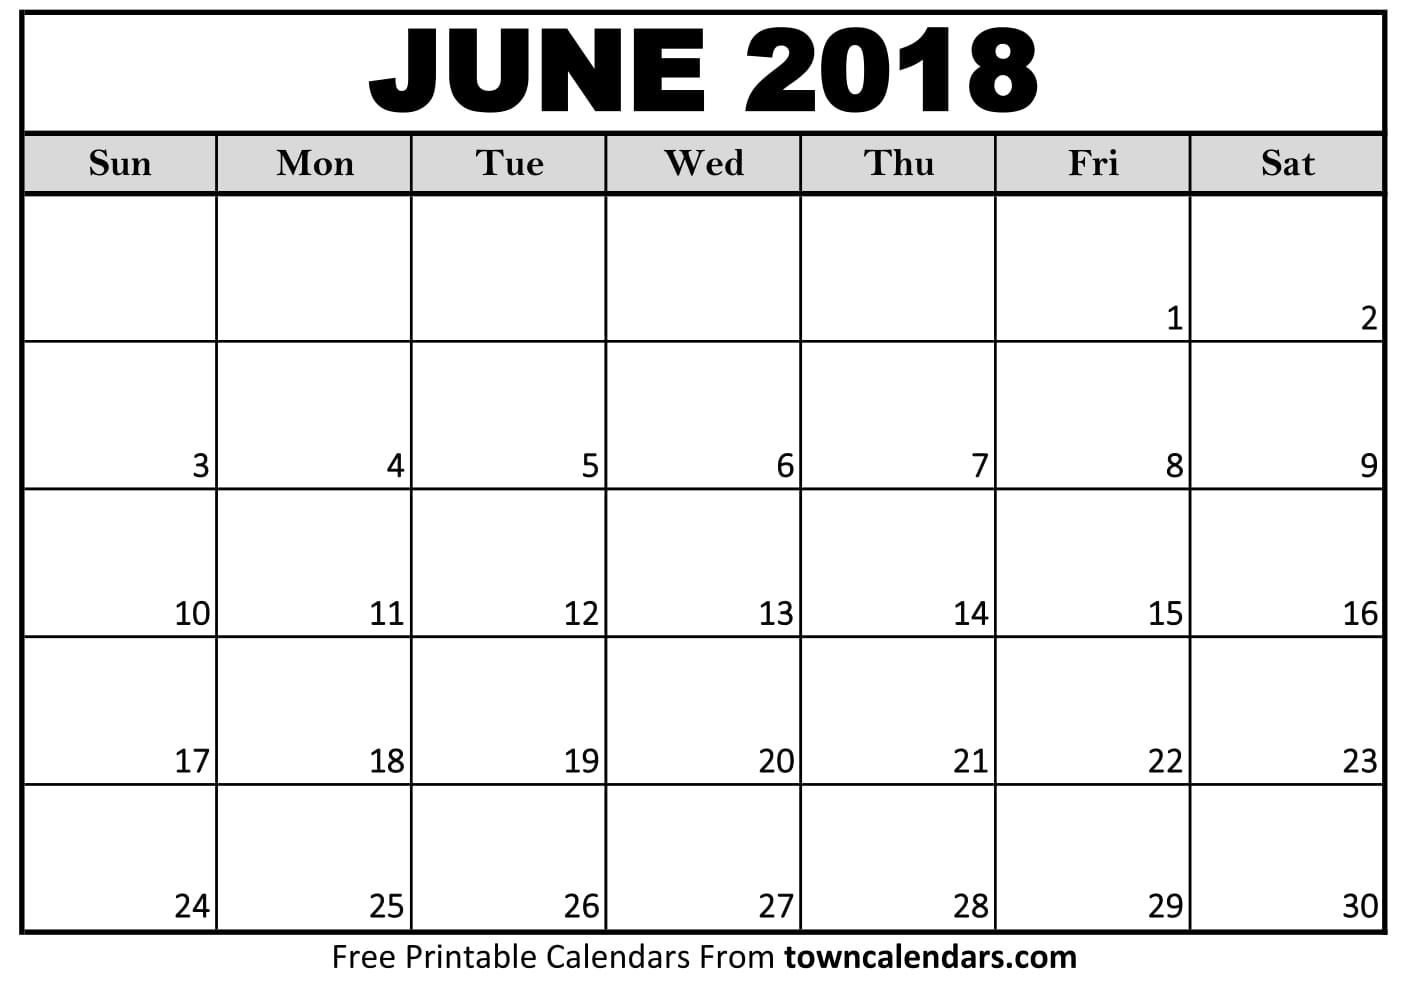 Calendar May June Printable : Printable june calendar towncalendars